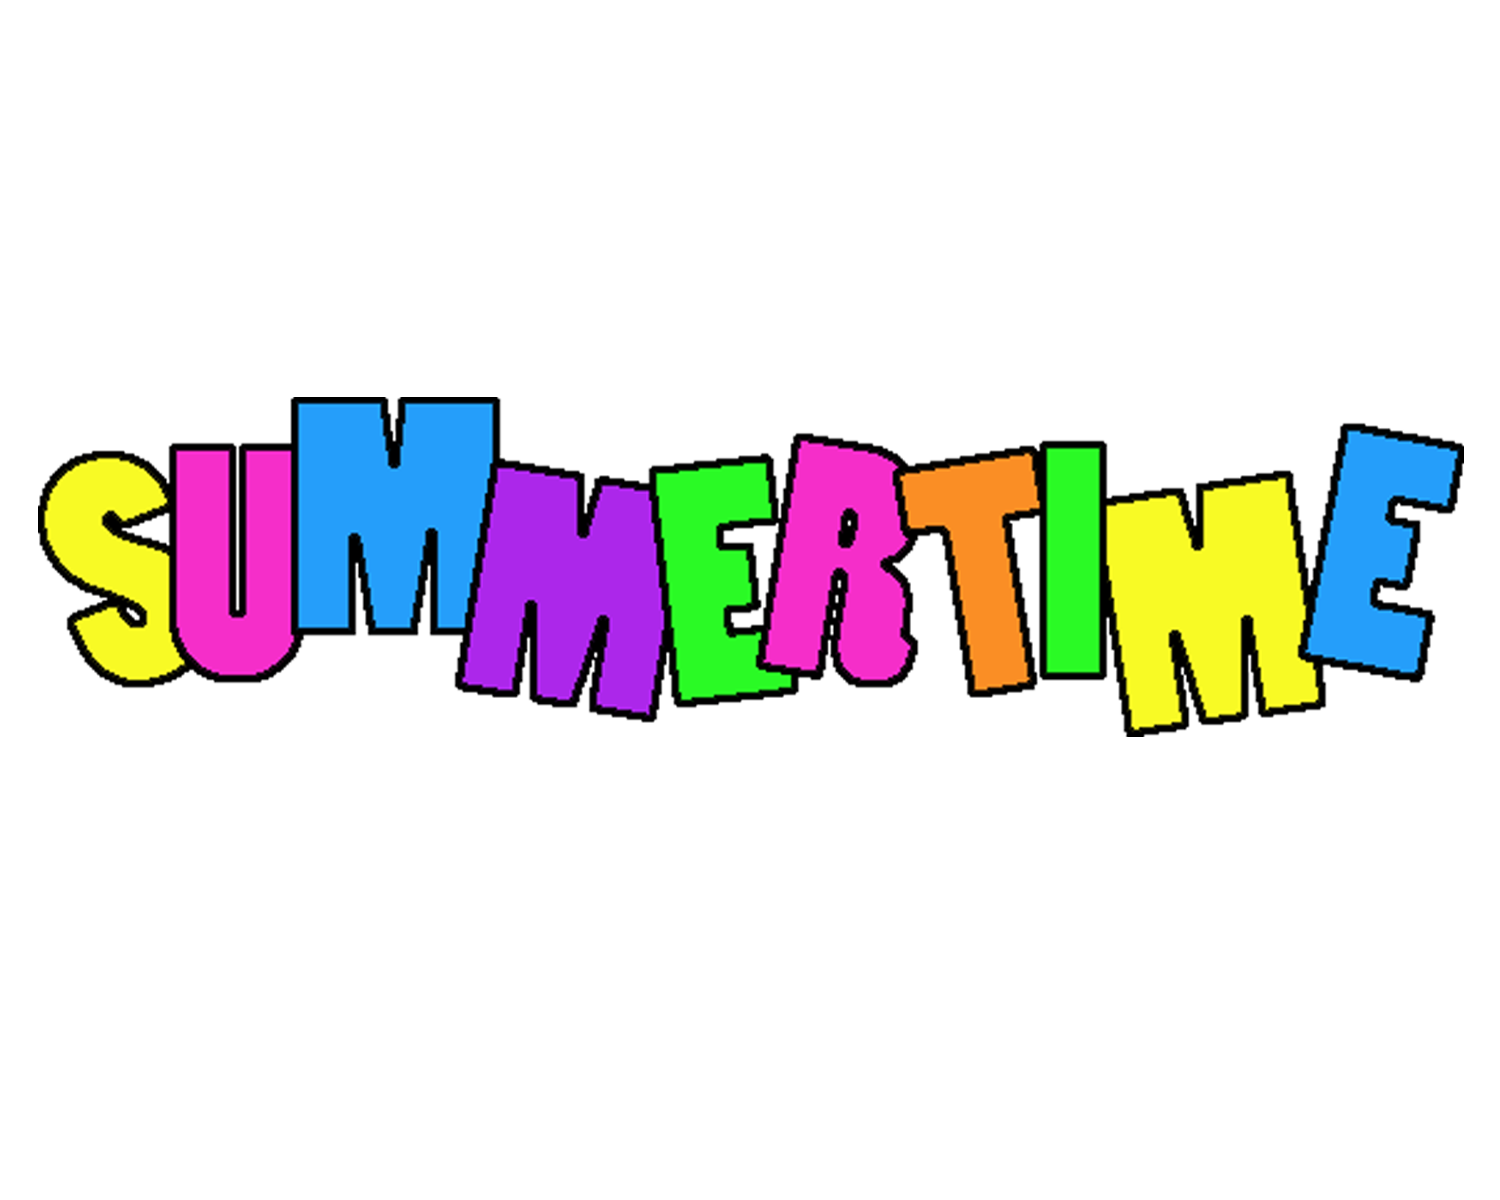 Smmertime clipart jpg royalty free download Free Summertime Cliparts, Download Free Clip Art, Free Clip Art on ... jpg royalty free download